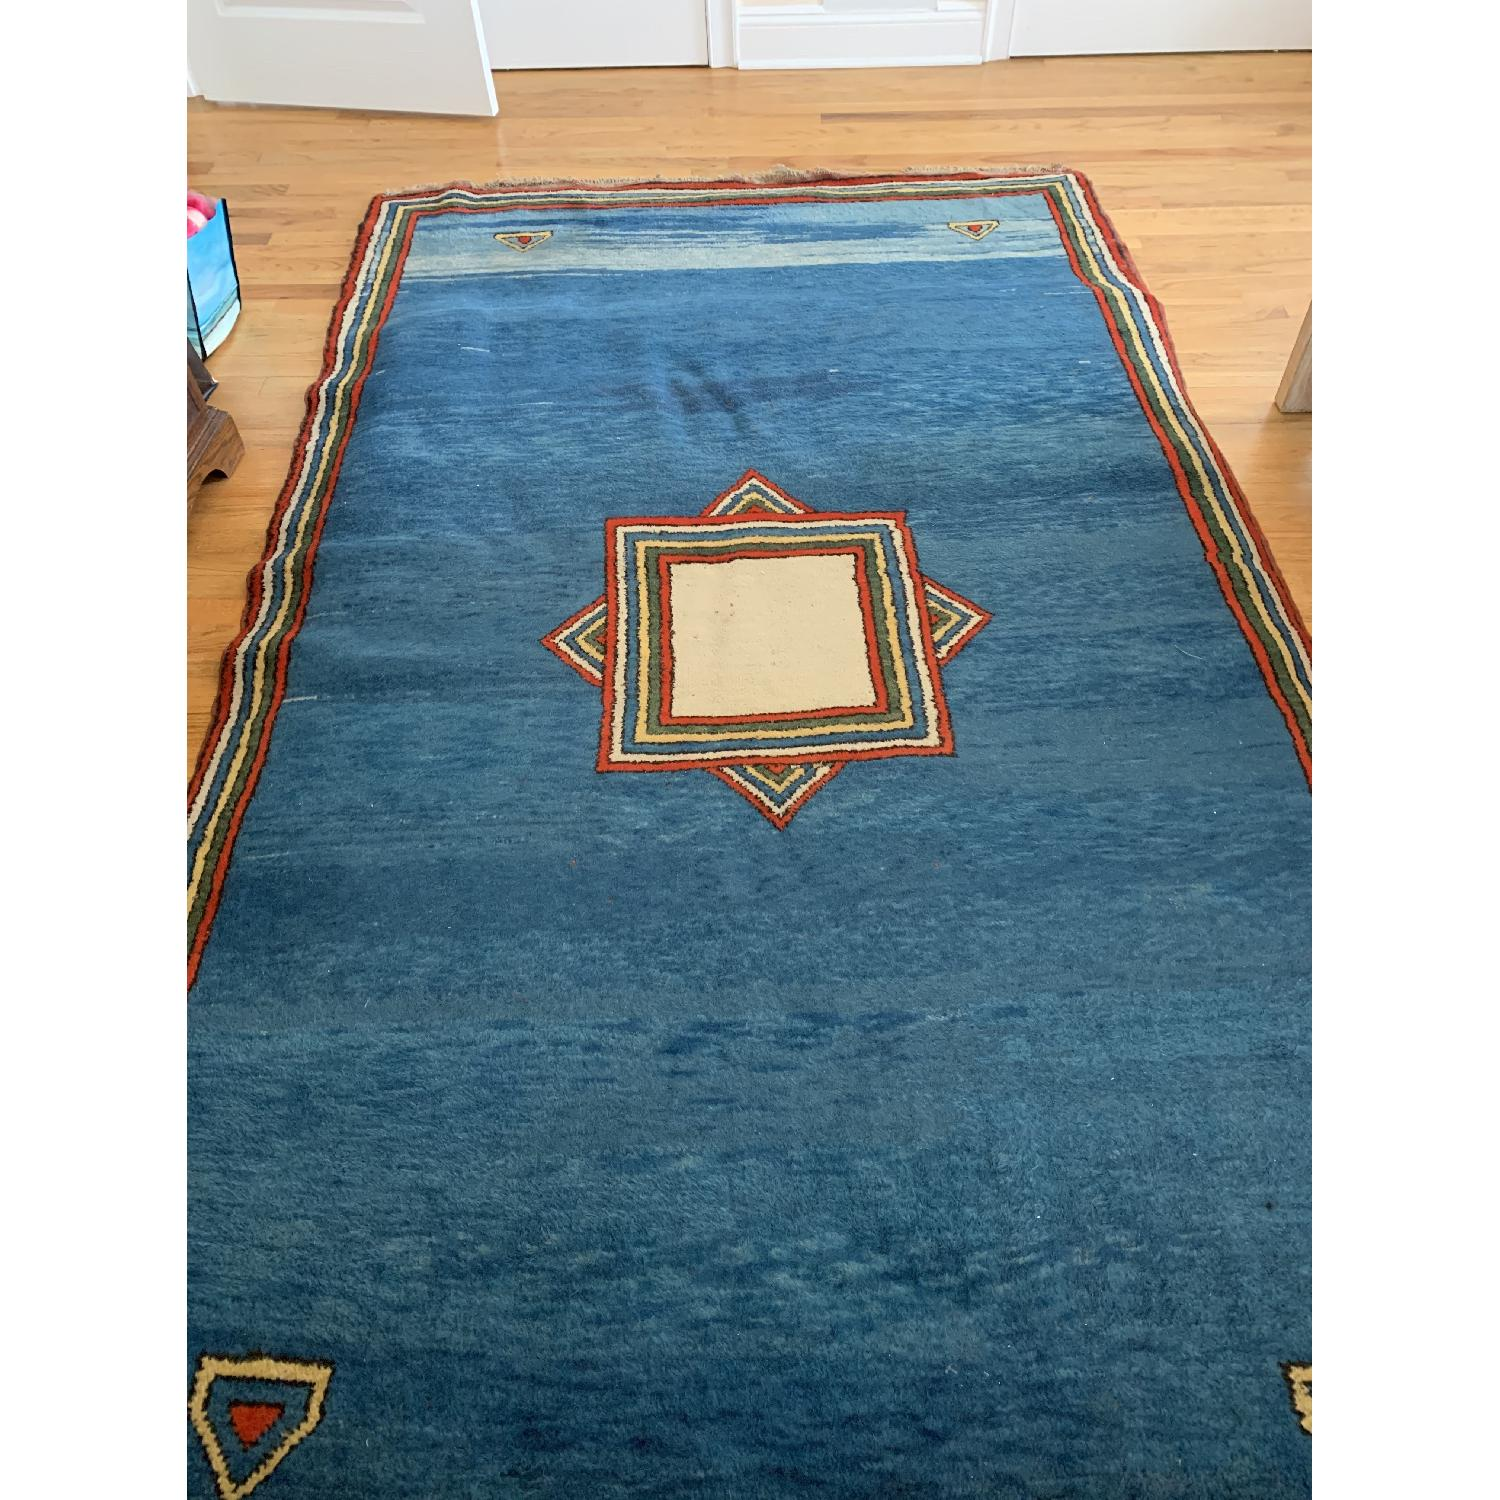 Persian Area Rug in Contemporary Design-0